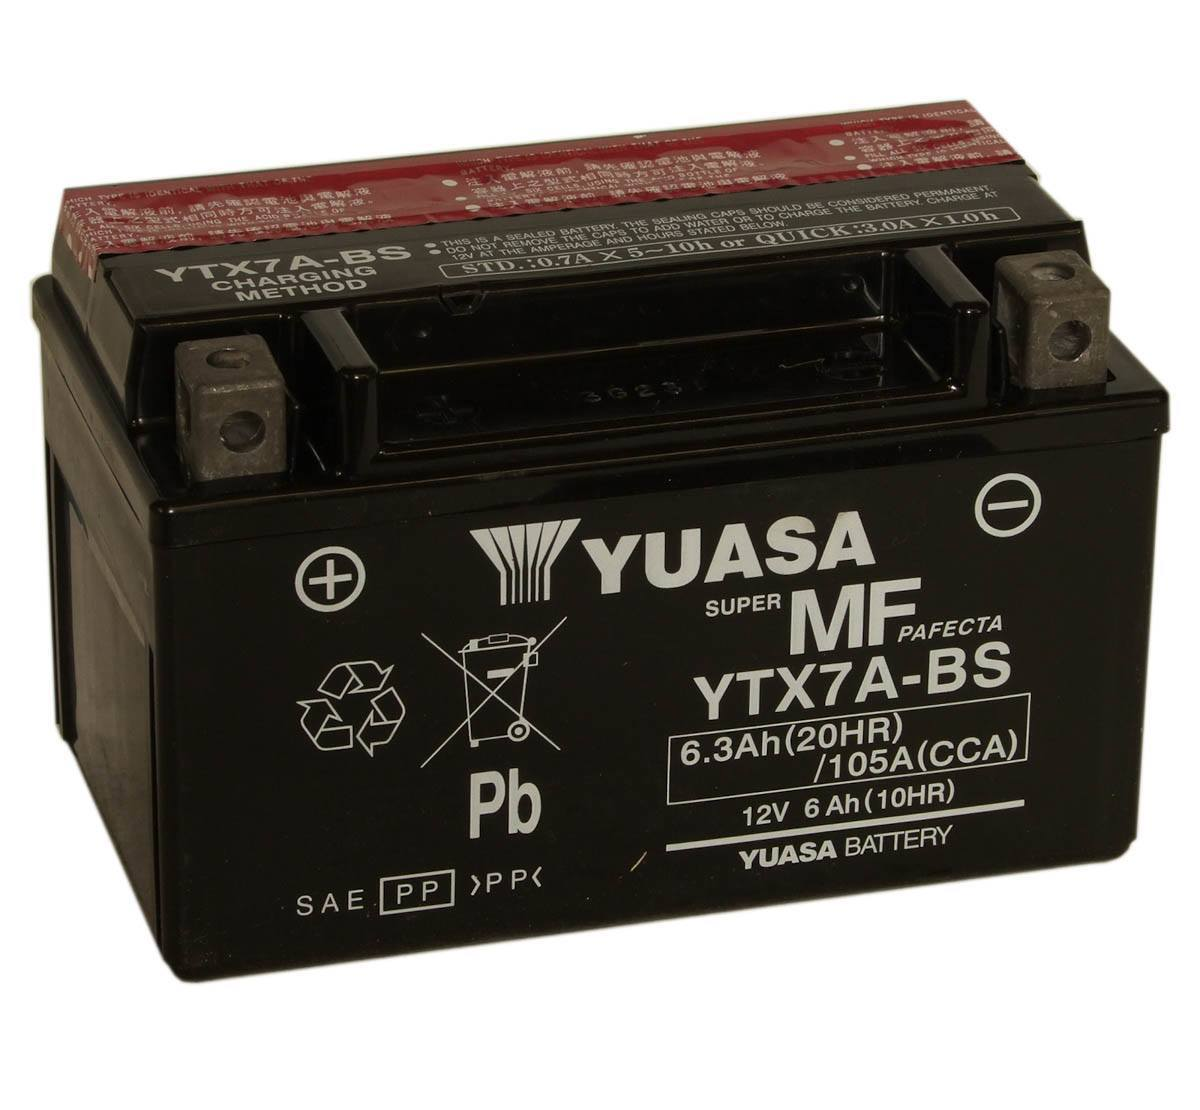 Get it delivered to your door - Yuasa YTX7A-BS Battery (Taiwan) - 955 (EGP)